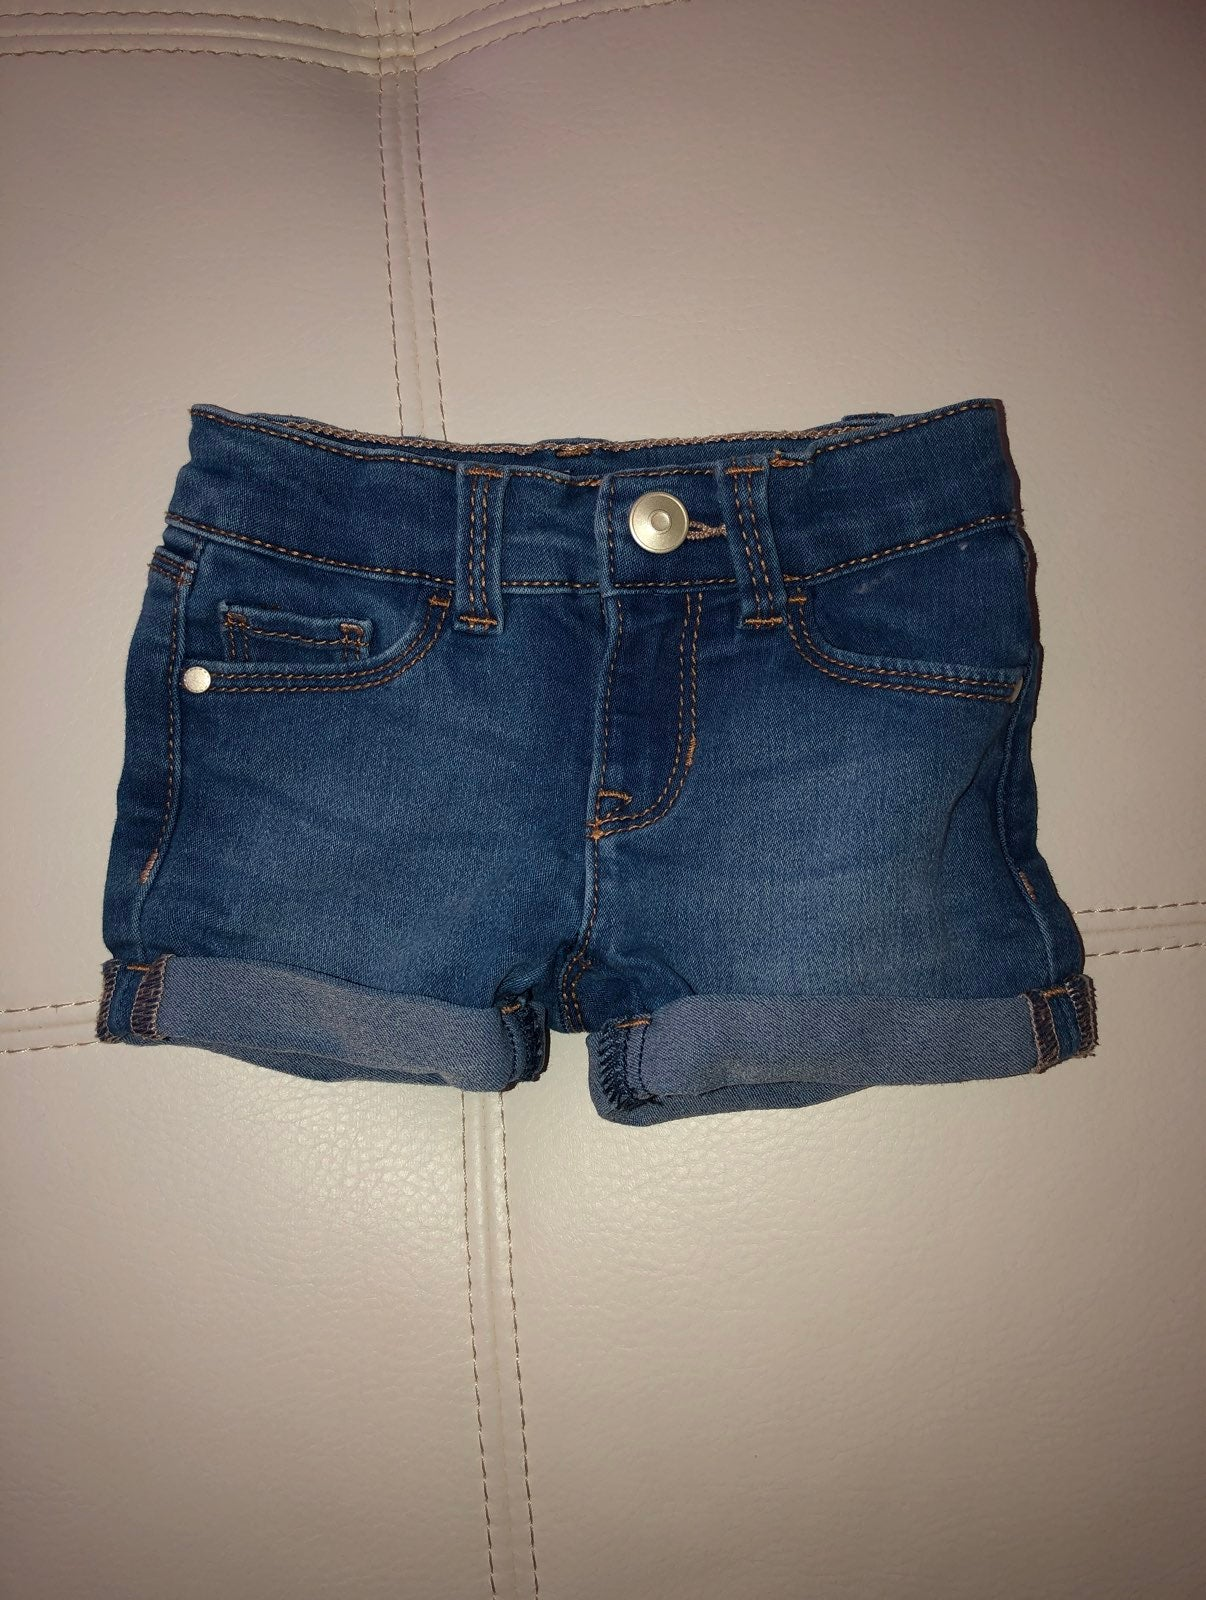 Jean Shorts 12 month girls